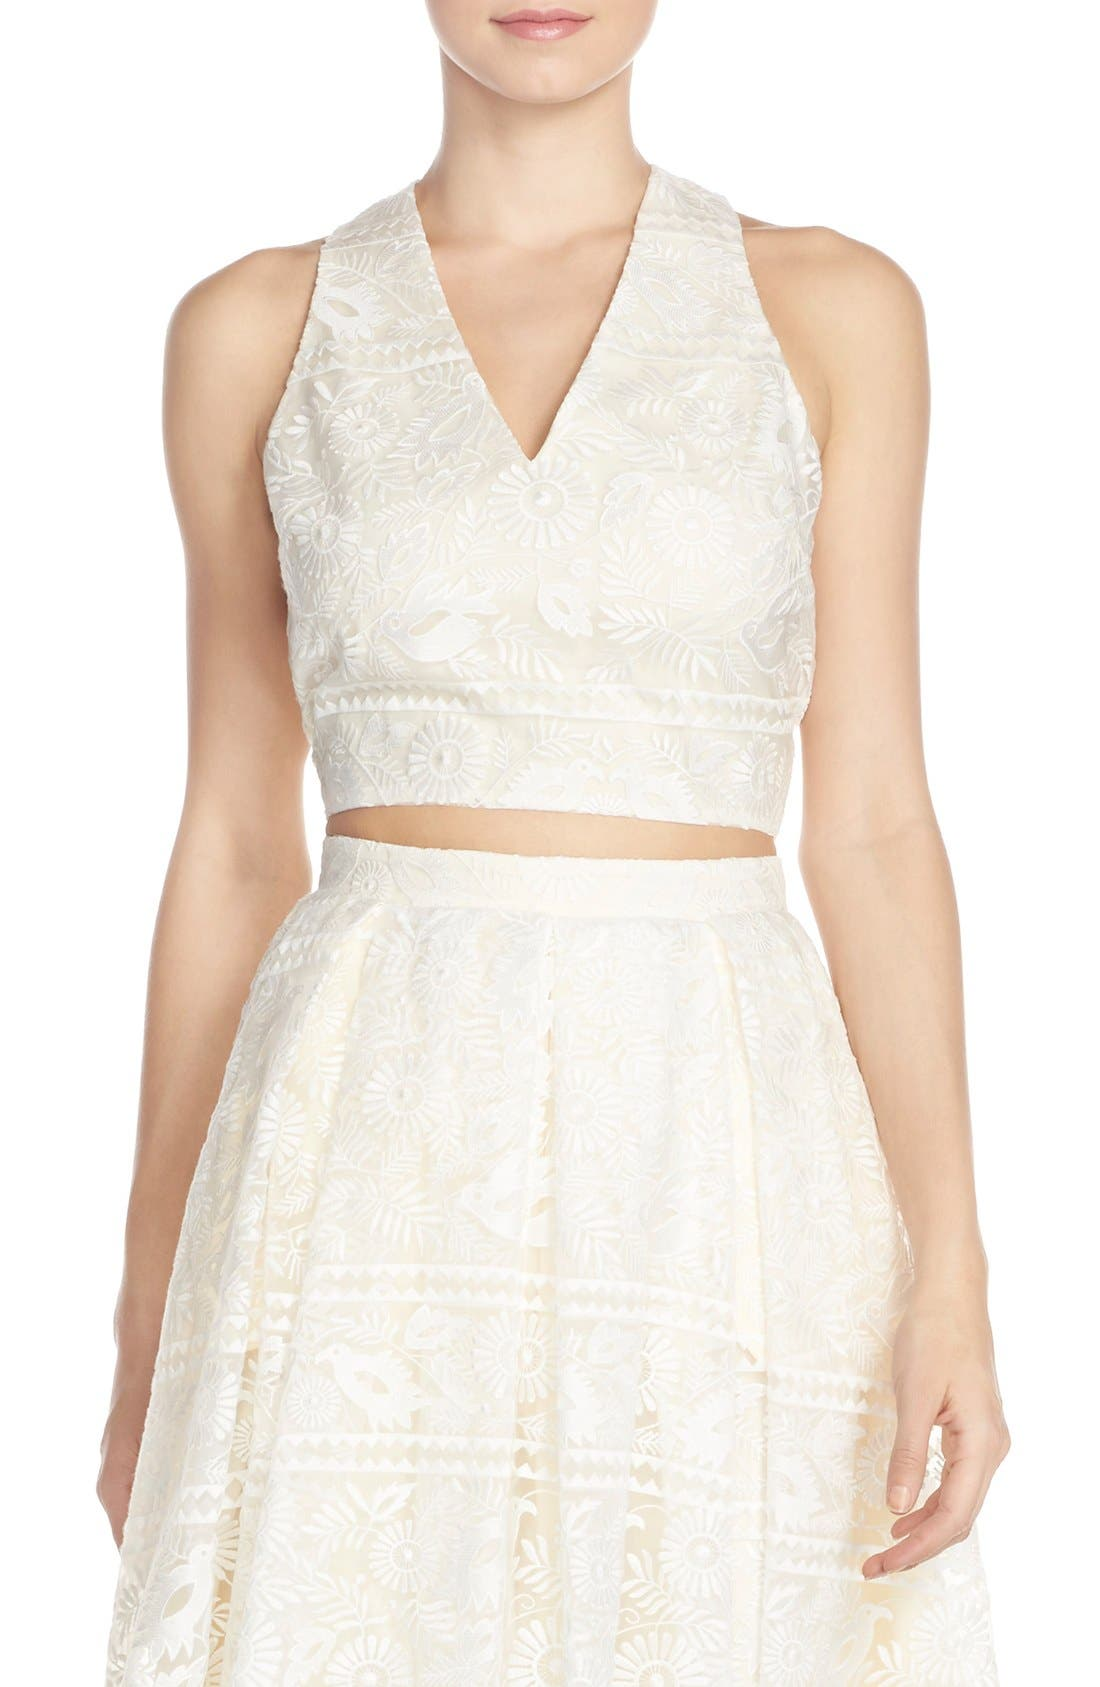 Alternate Image 1 Selected - Paper Crown by Lauren Conrad Organza Lace V-Neck Top